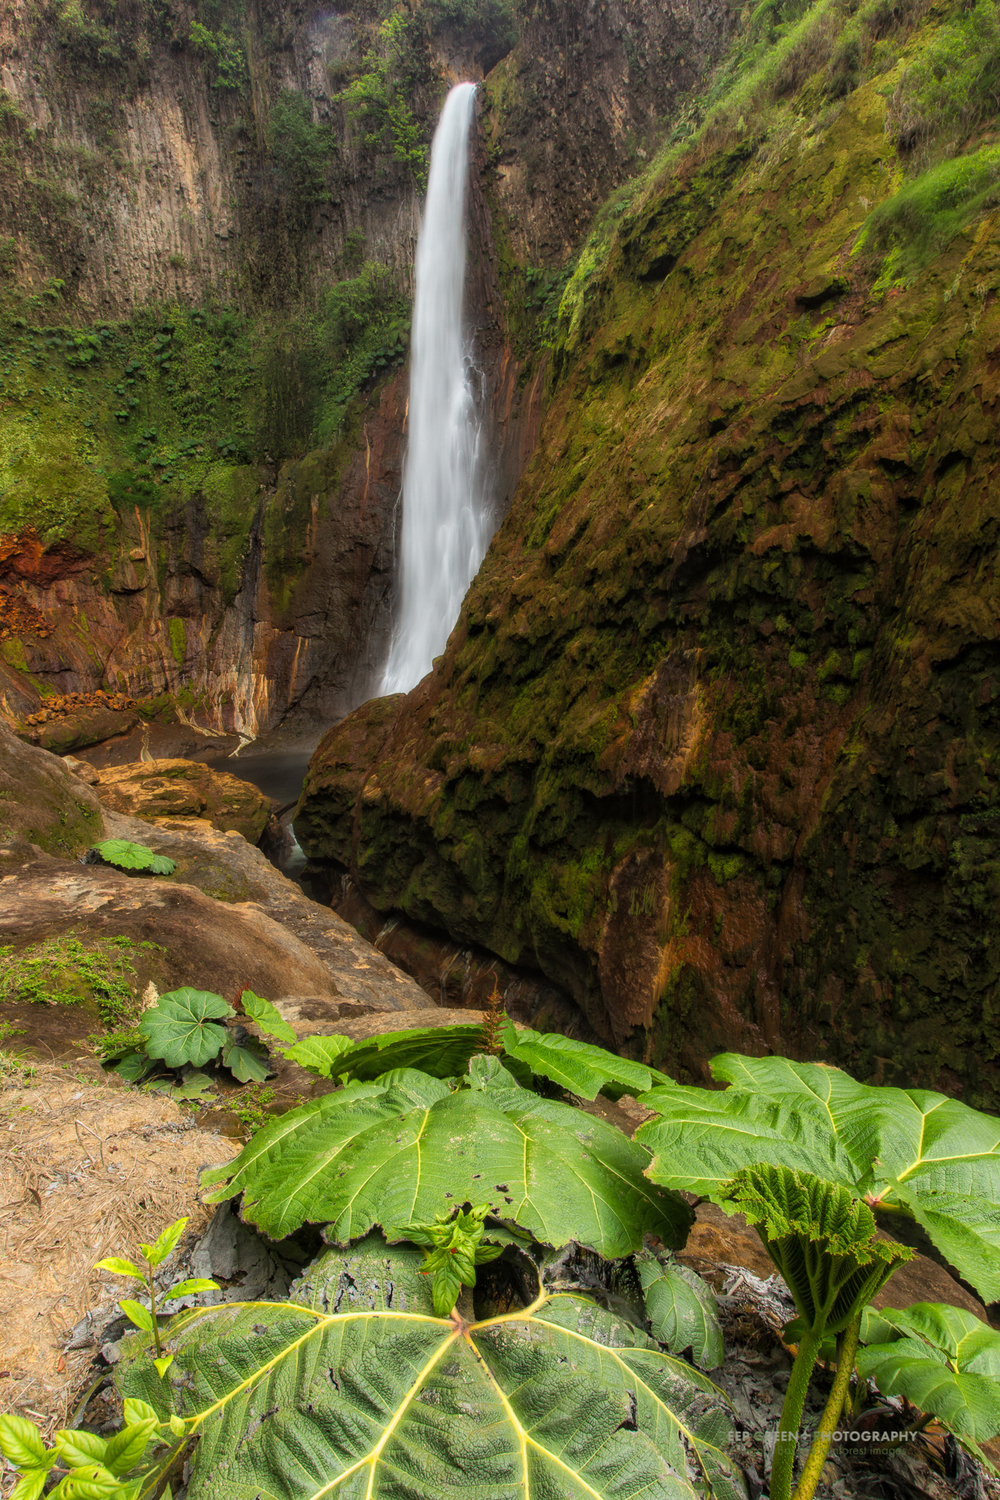 The Toro waterfall is 110 meters high and located in one of the wettest areas of the country and on the planet. The area receives over 6000 mm of rain per year and is home to a number of Costa Rica's hydroelectric power plants.